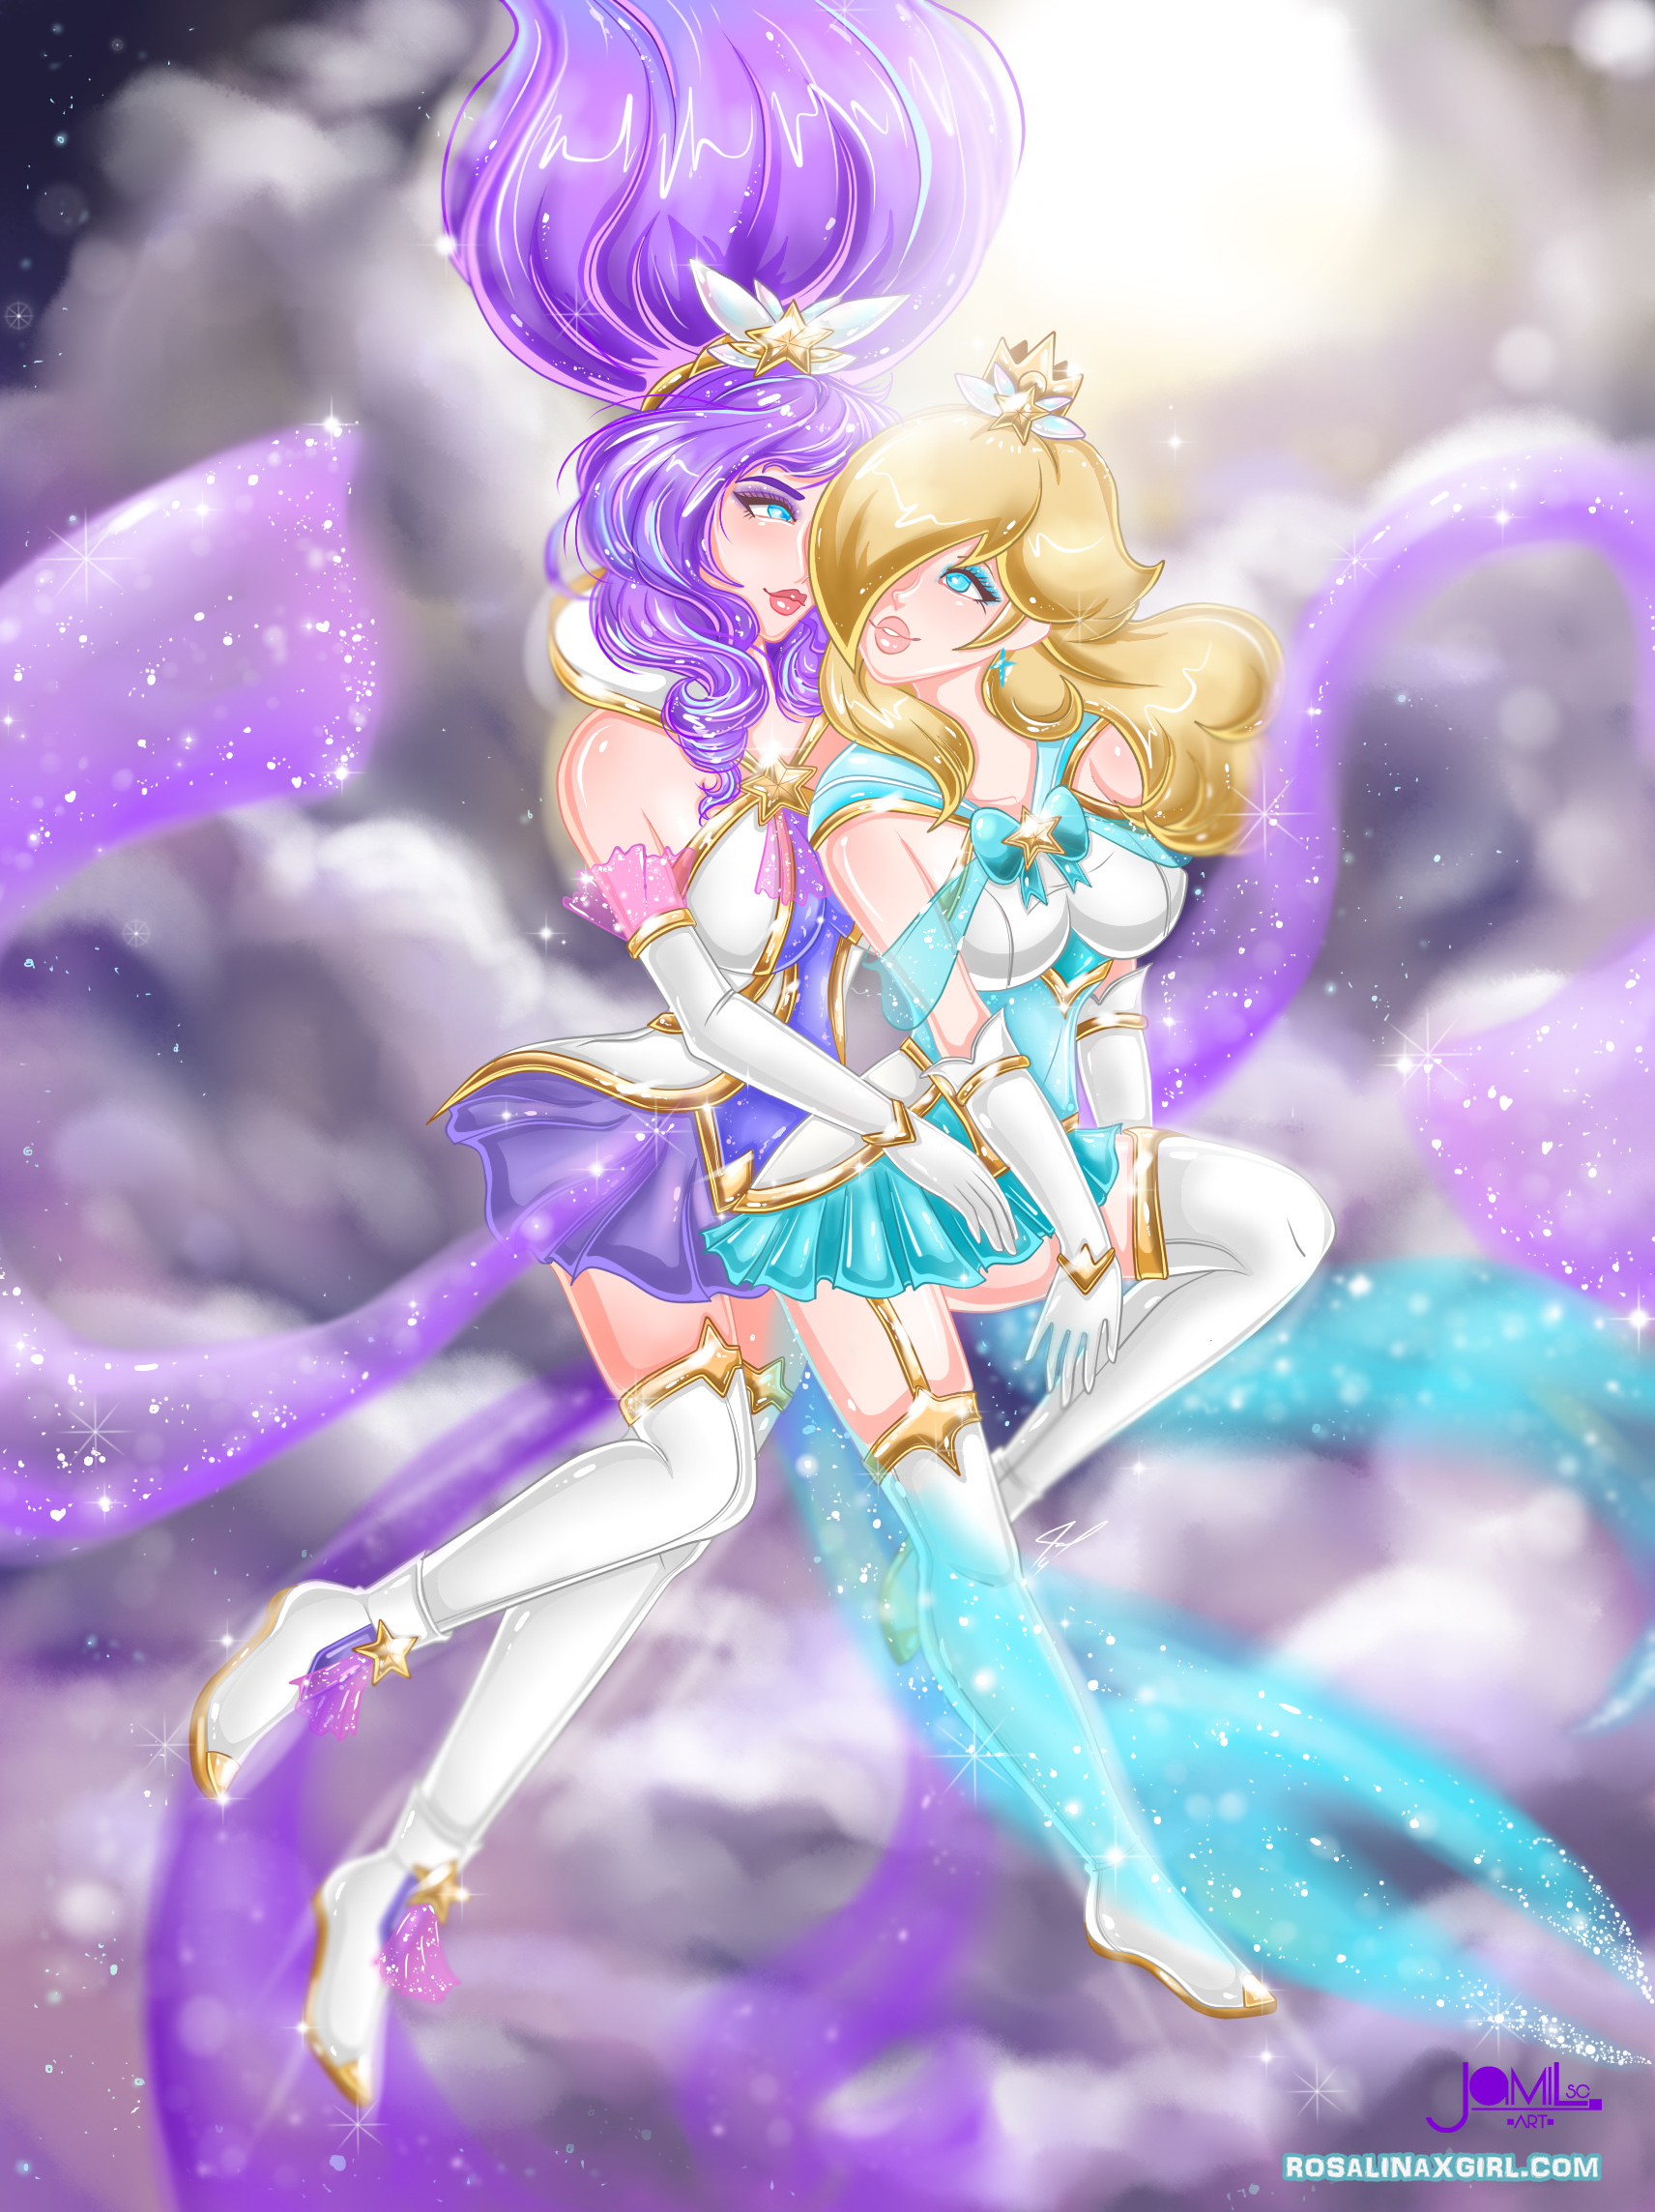 princess rosalina Nintendo star guardian Janna crossover league legends